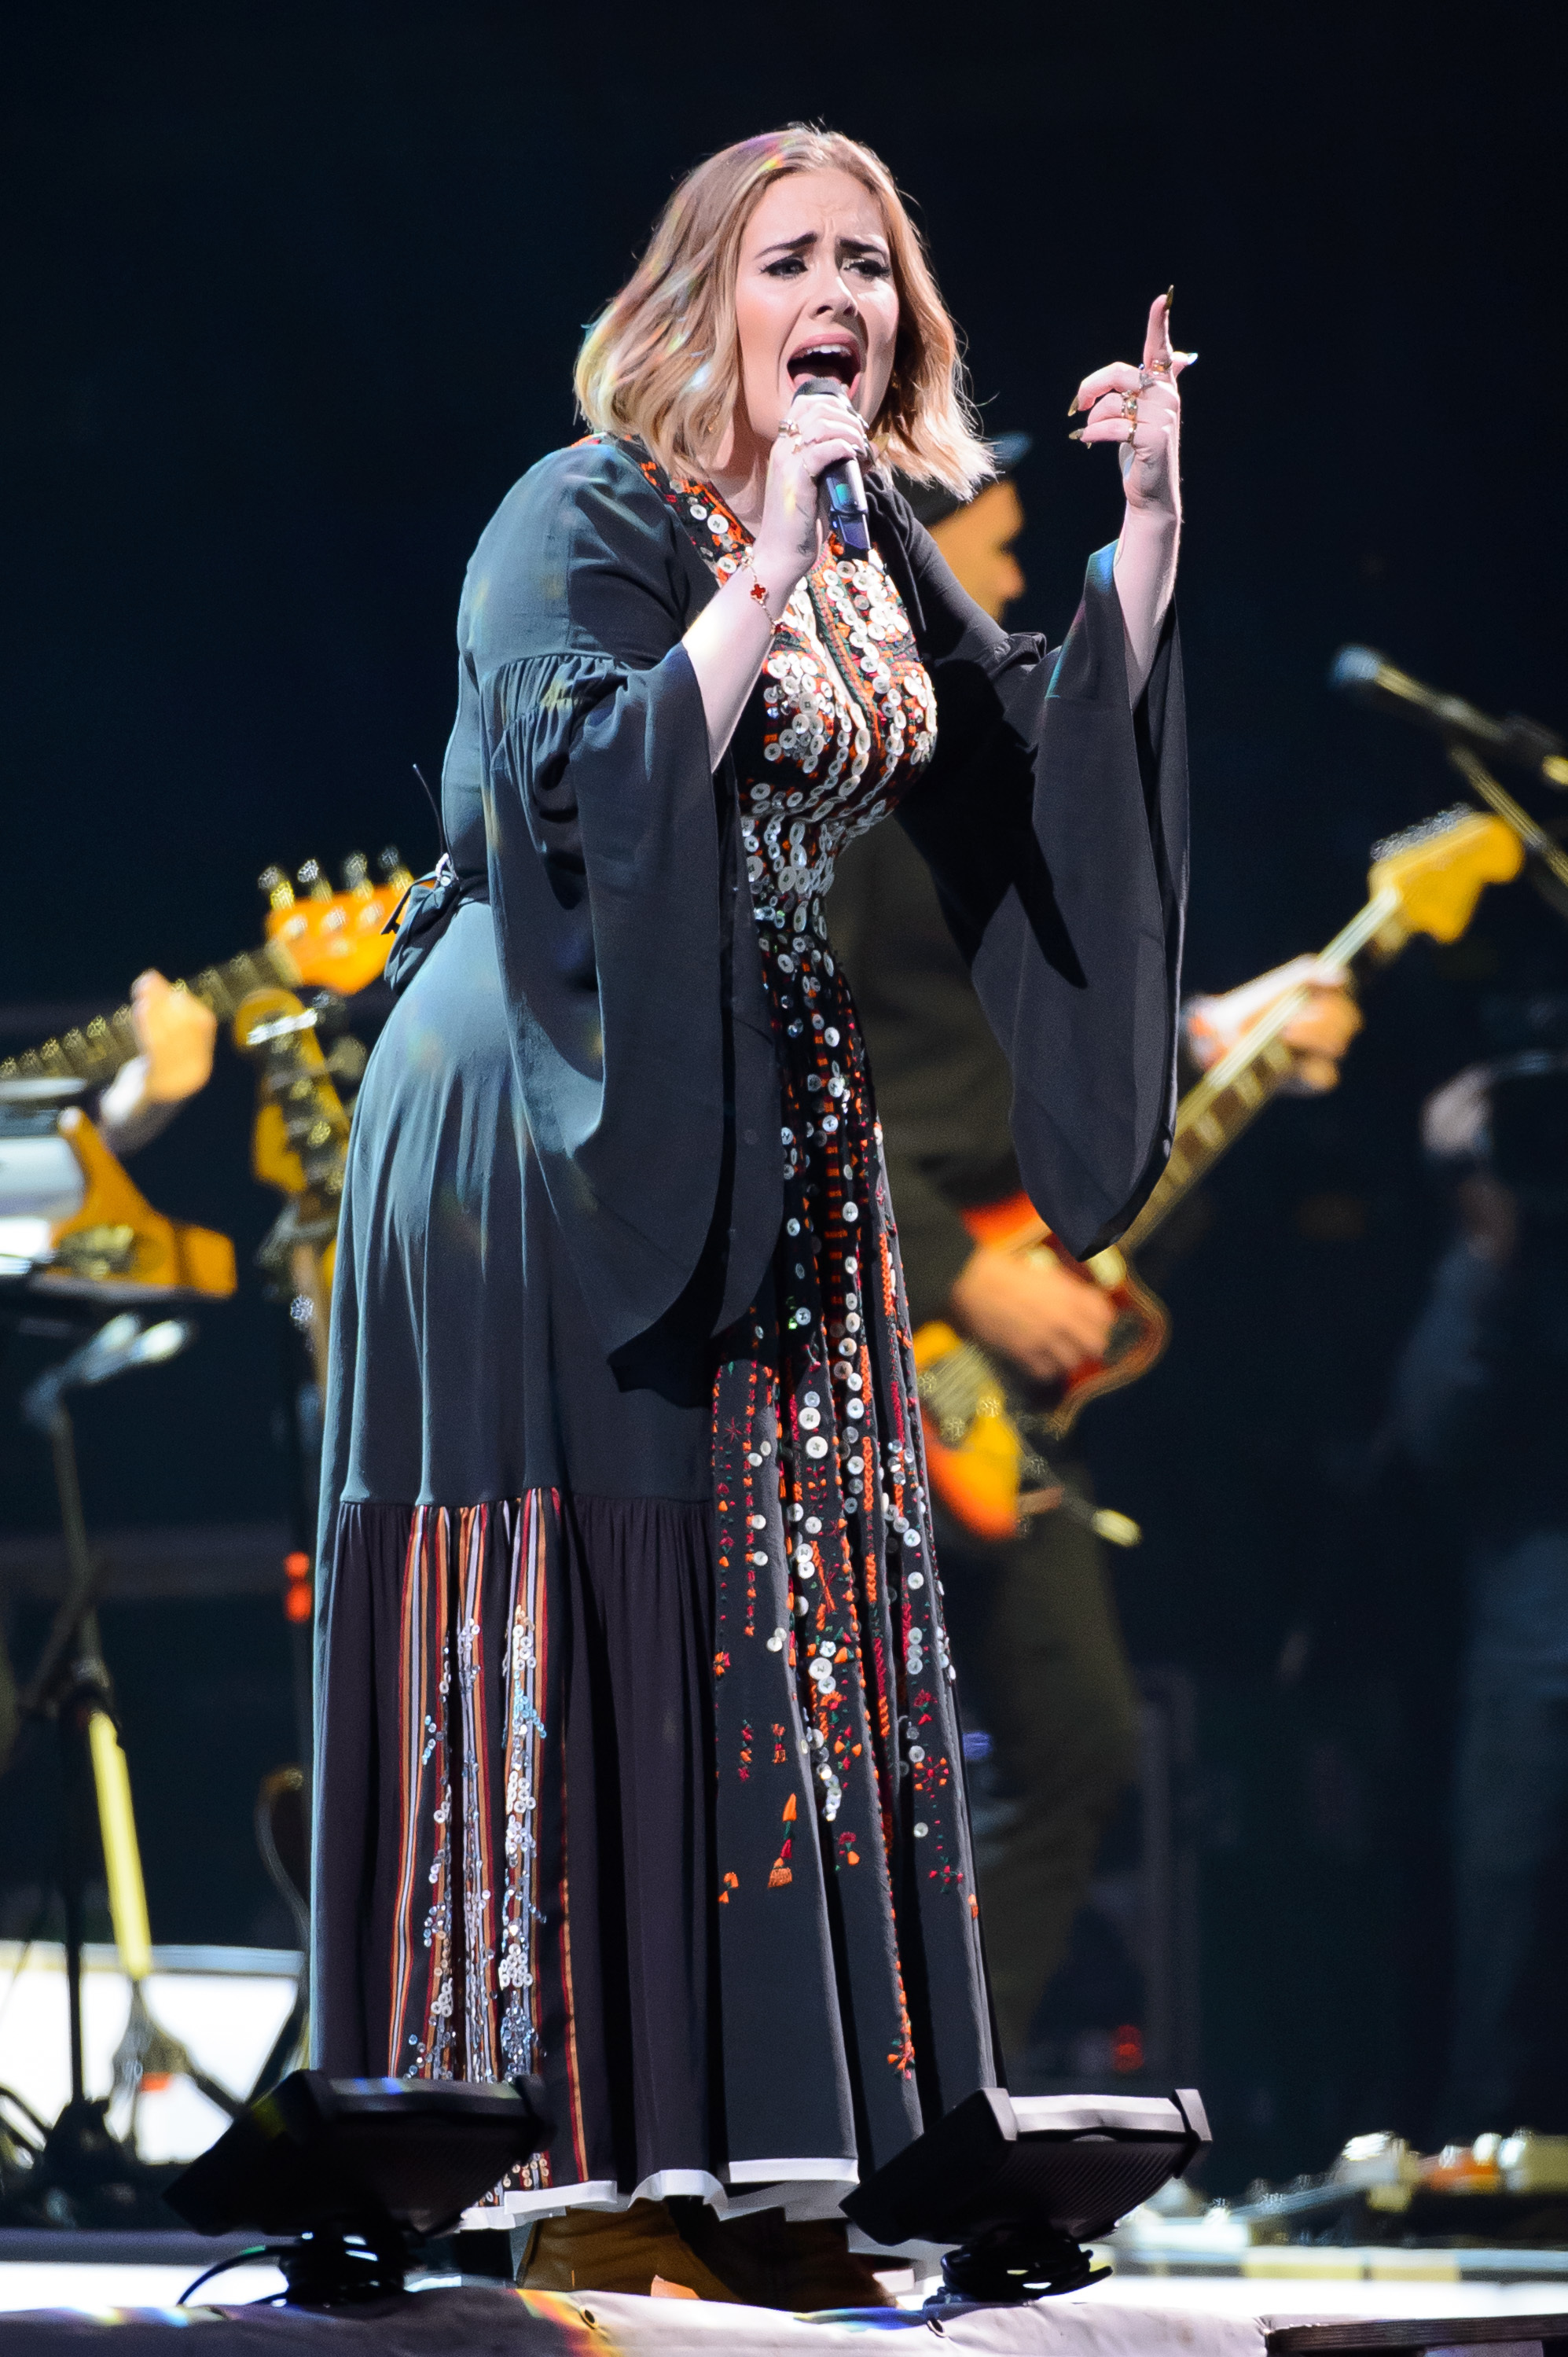 Adele performing on the Pyramid Stage at the Glastonbury Festival in the UK on June 25, 2016.